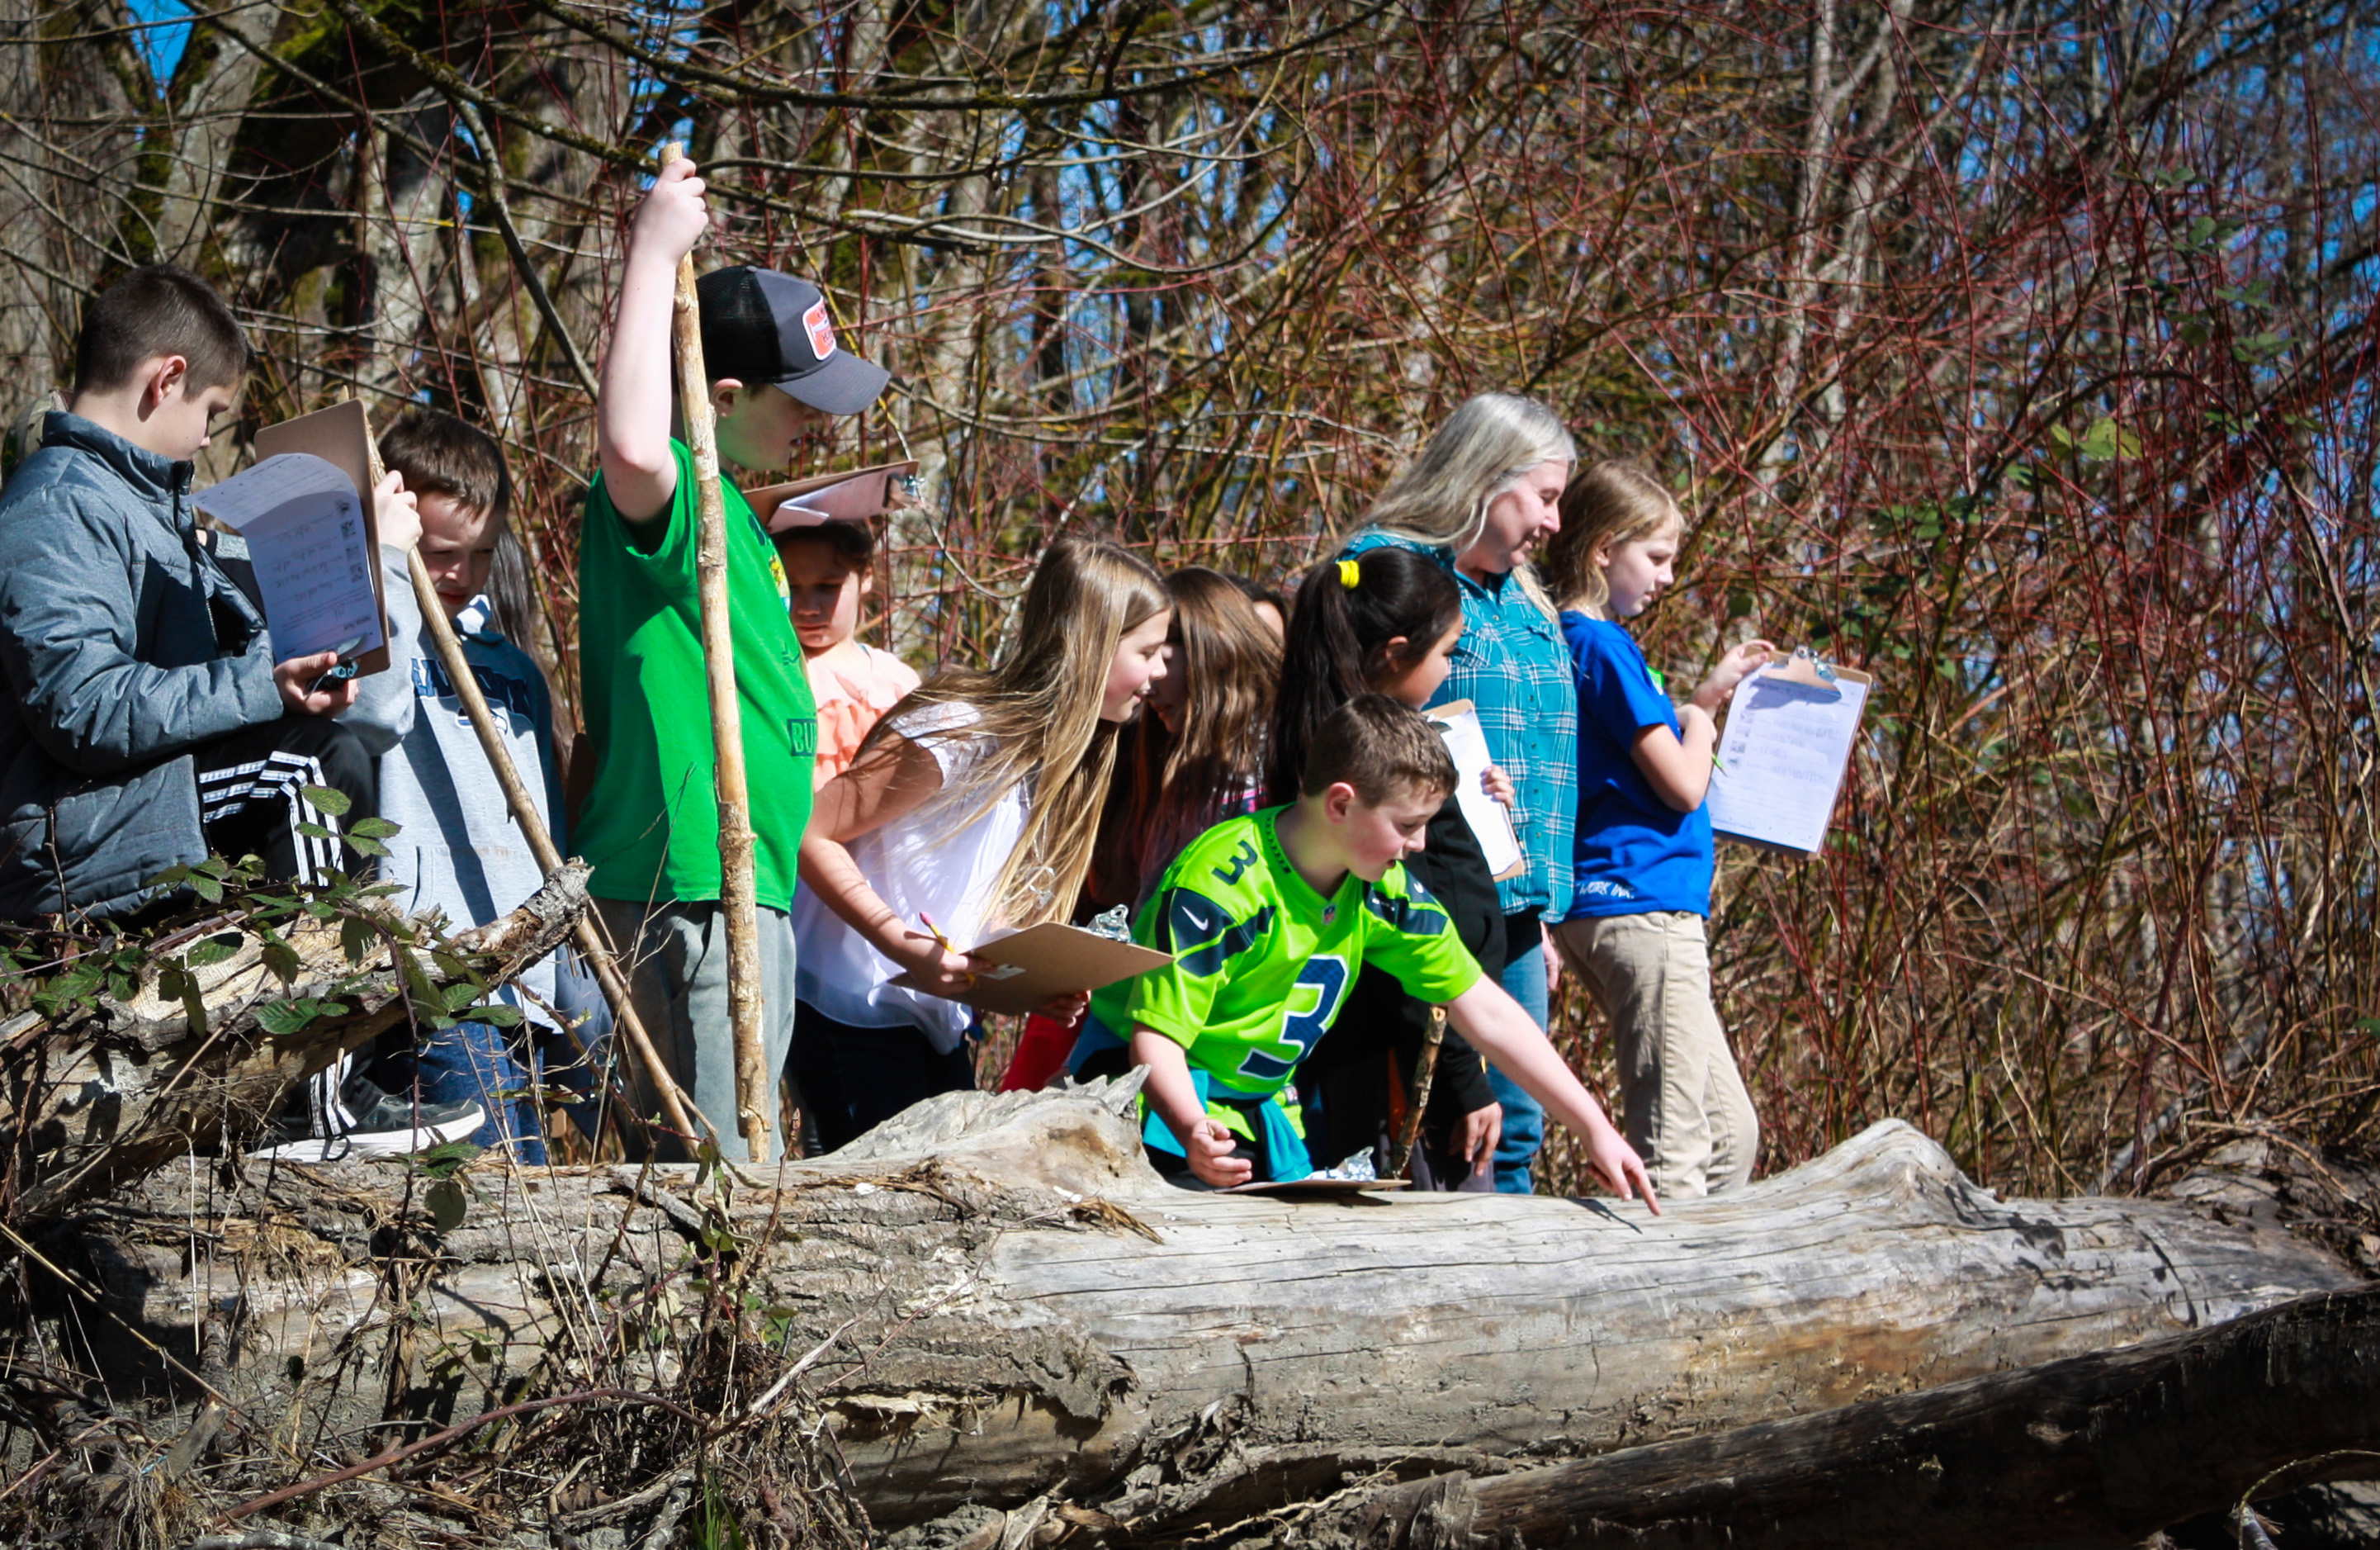 Fifth grade students from Lyman Elementary school participate in field-based environmental education at Lyman Slough, March 2018. Photograph credit: Skagit Land Trust staff.